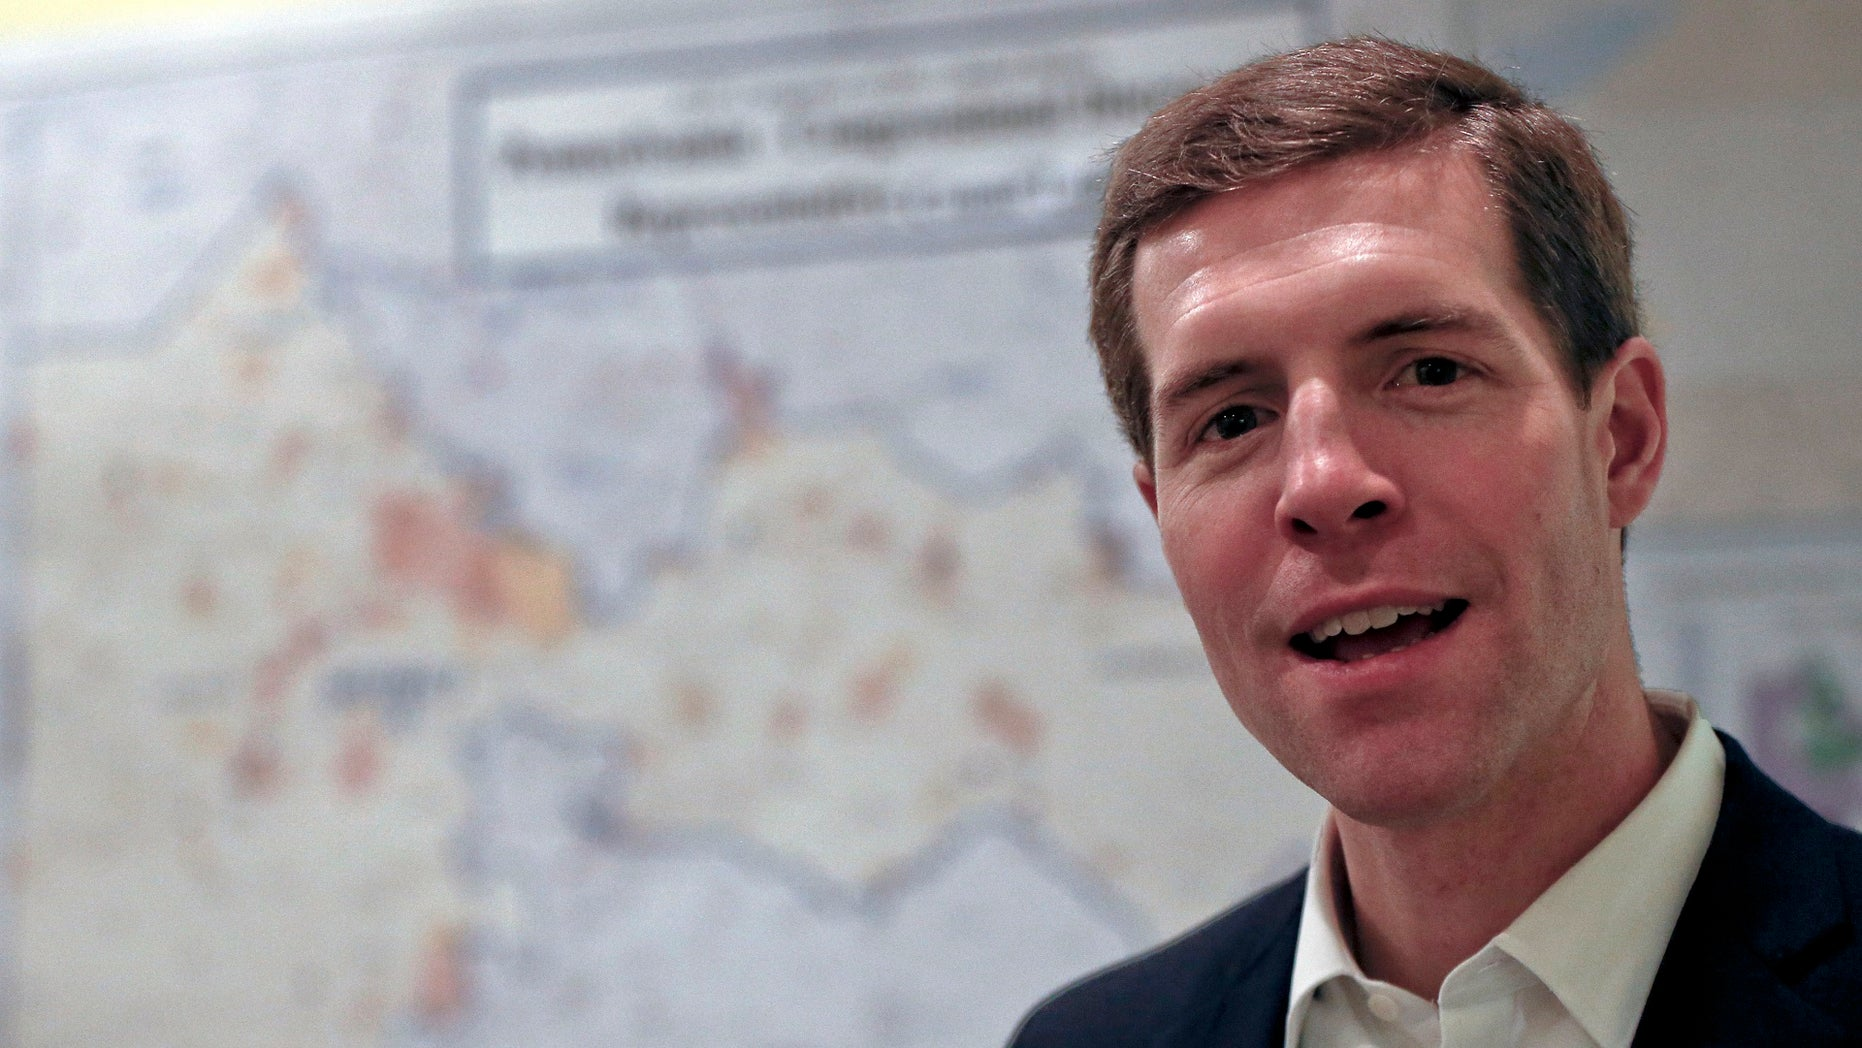 Democrat Conor Lamb stands in front of the map of the congressional district he was running to represent while at a campaign office, Wednesday, March 7, 2018 in Carnegie, Pa. Lamb was elected in a special election held March 13 for the PA district vacated by Republican Tim Murphy.